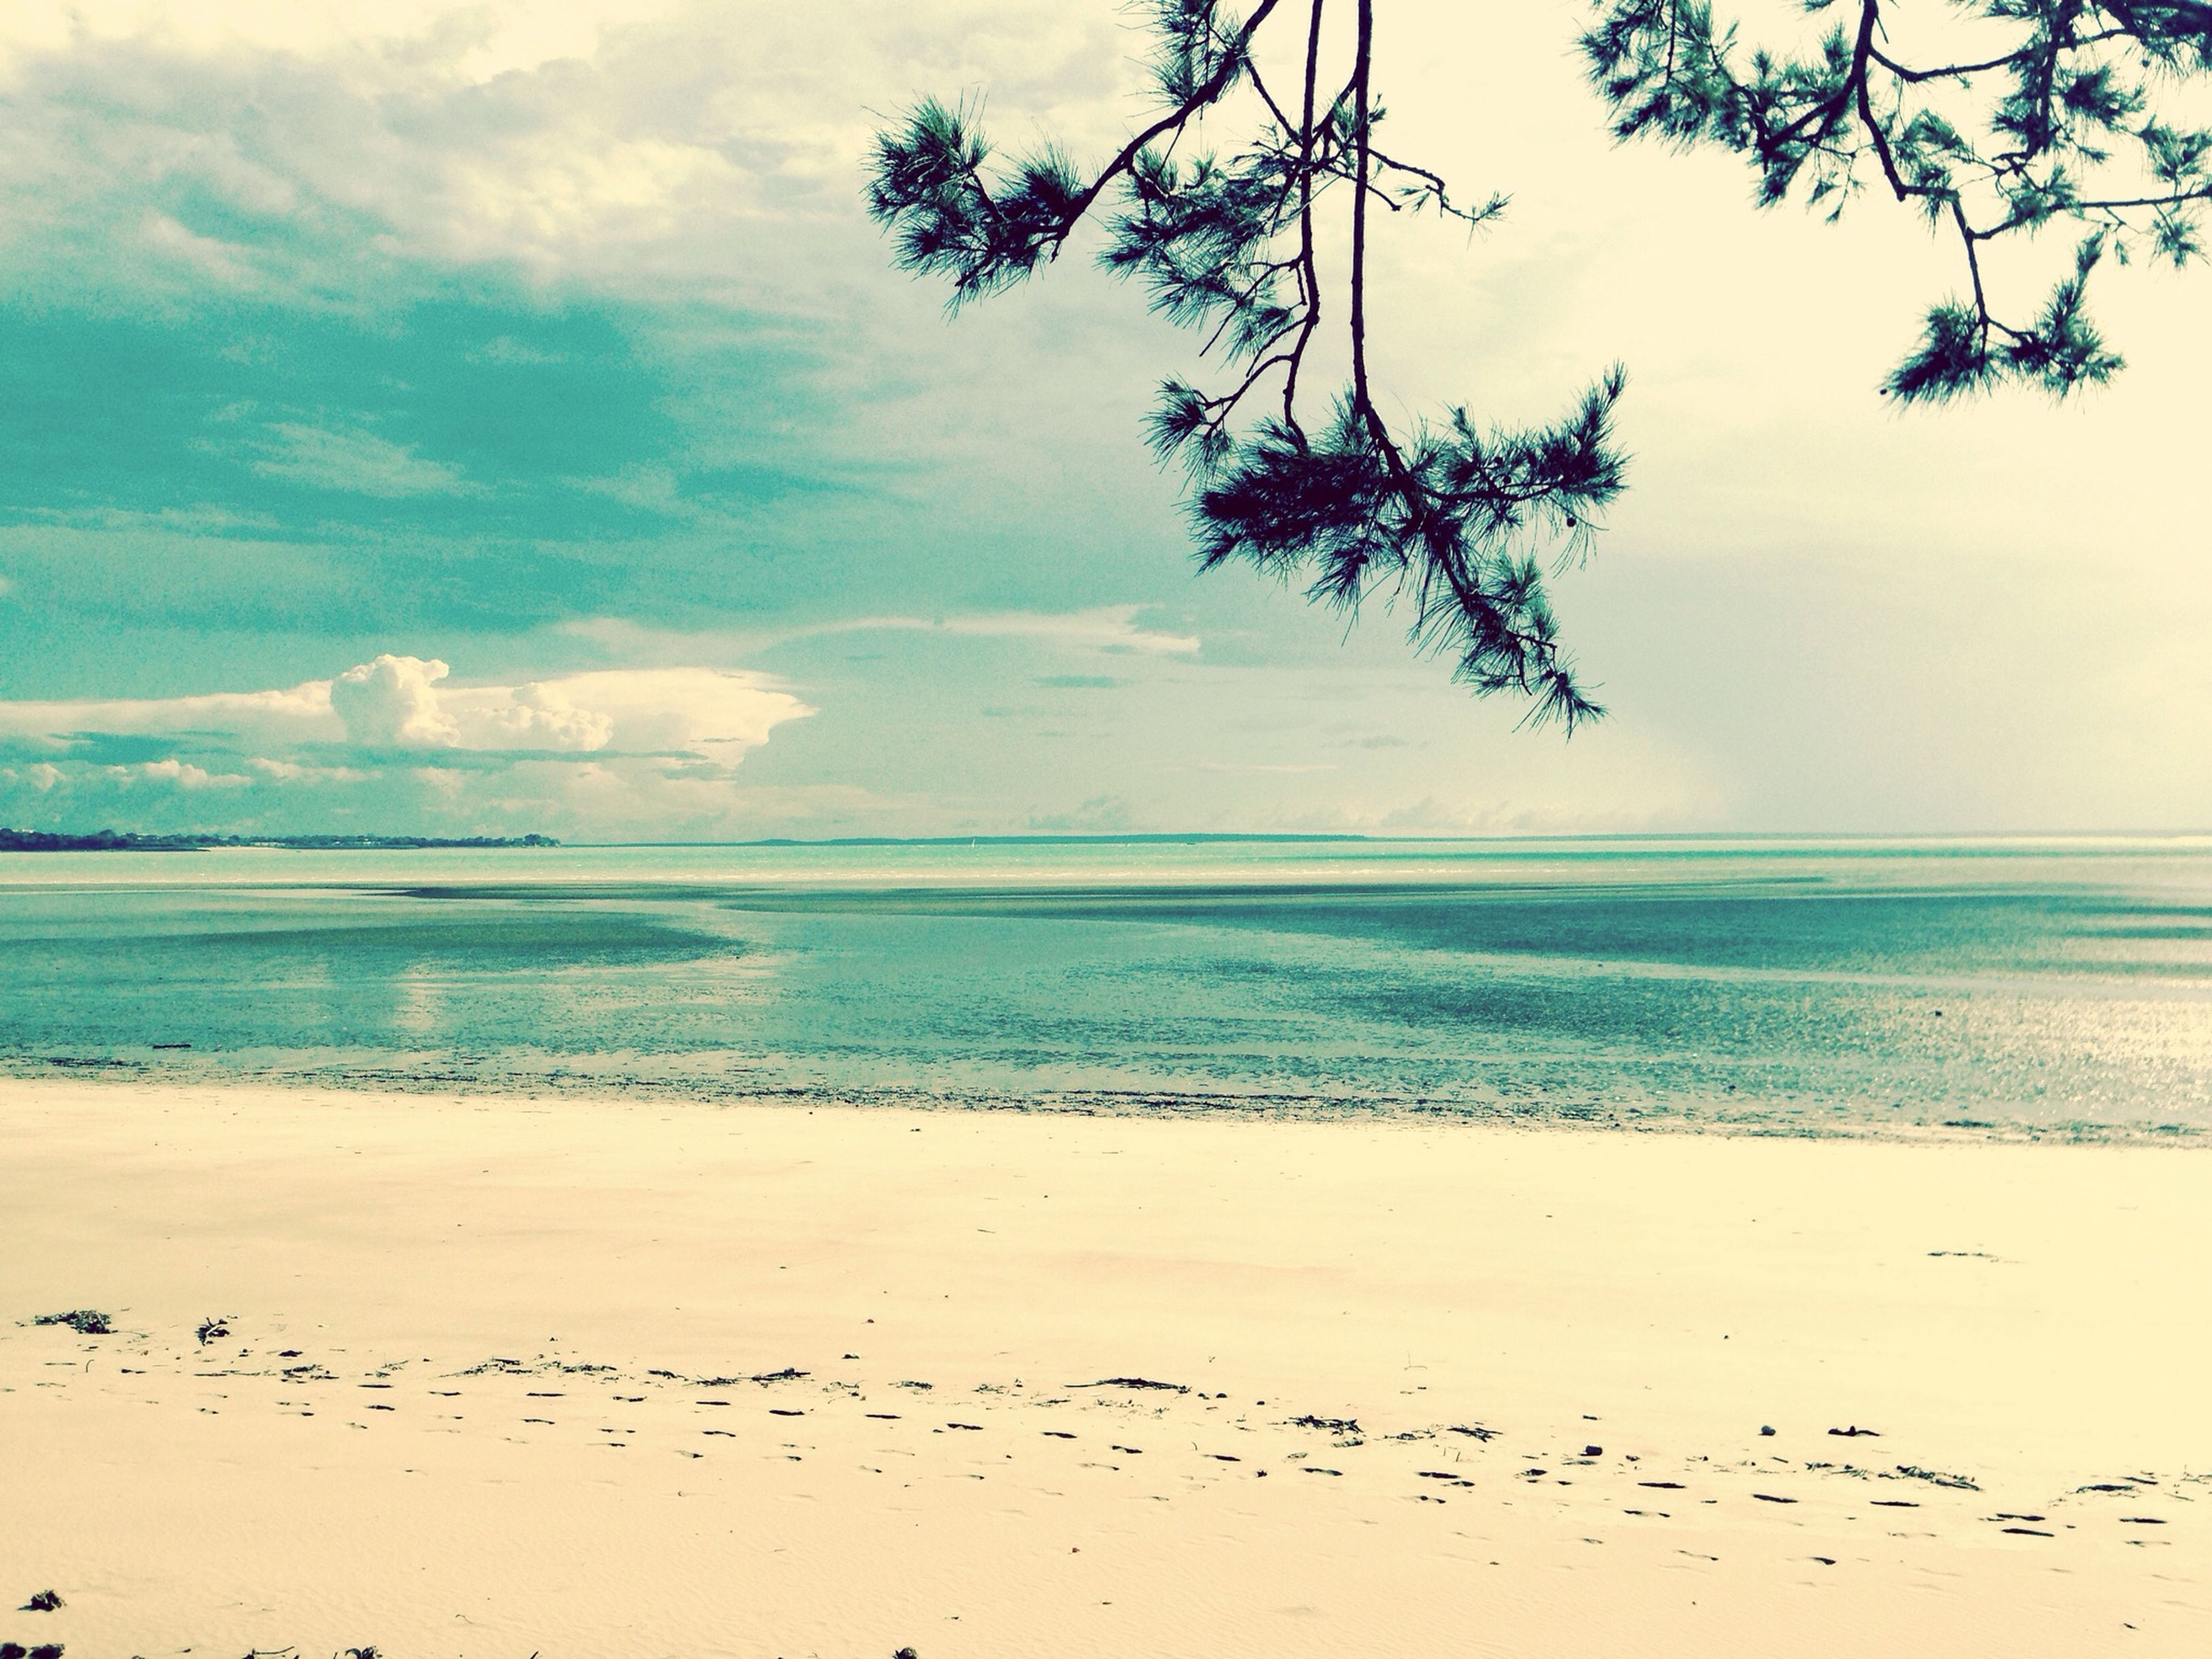 water, sky, tranquil scene, bird, tranquility, scenics, beauty in nature, horizon over water, sea, nature, tree, animals in the wild, animal themes, beach, wildlife, cloud - sky, idyllic, branch, outdoors